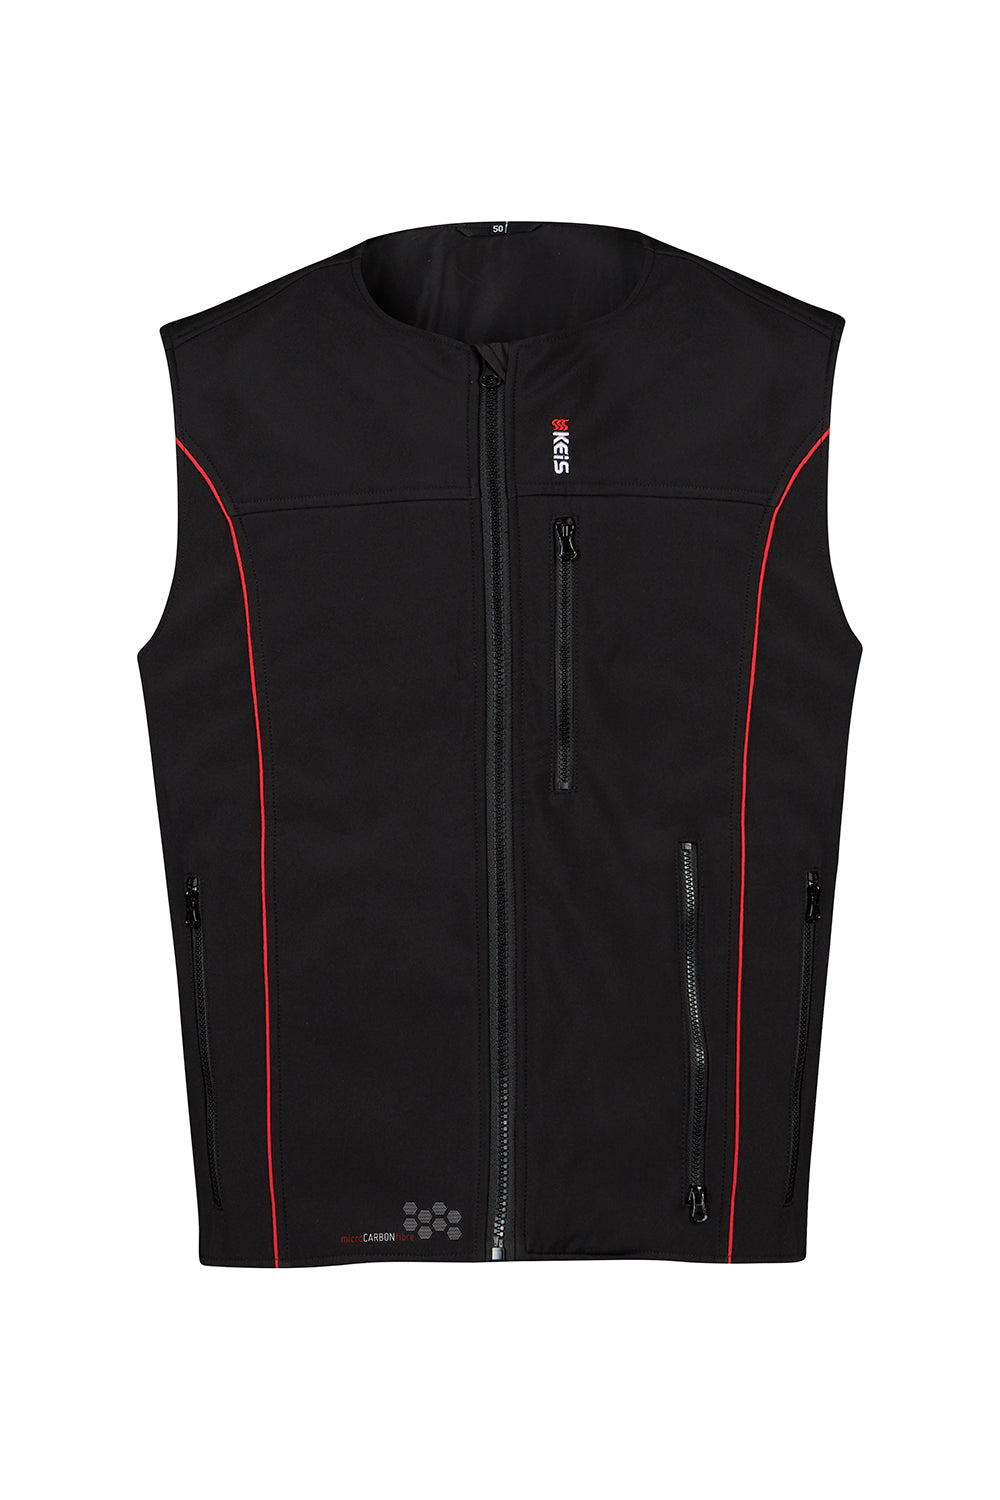 Keis heated vest baclk with red piping down front